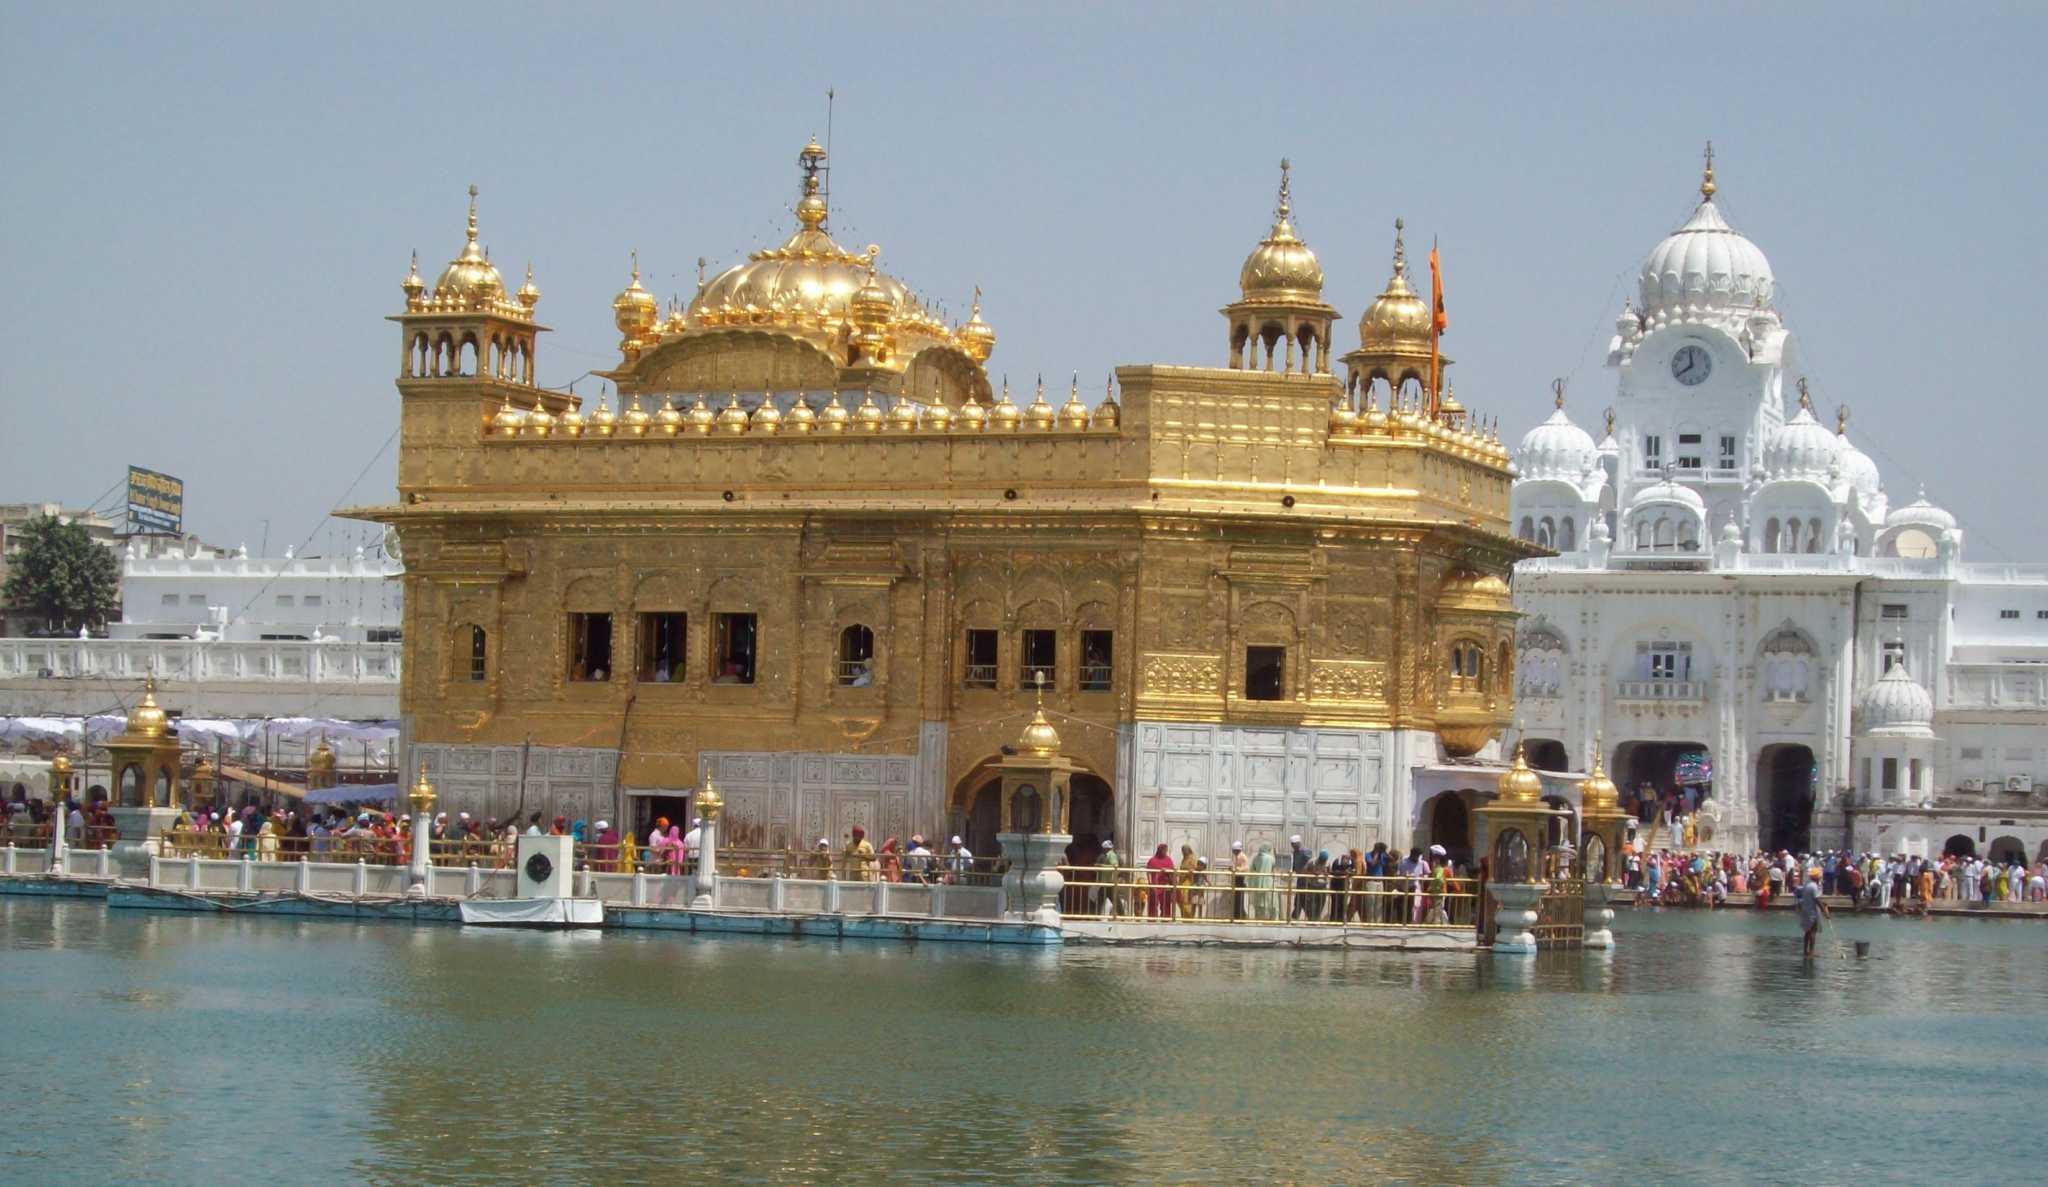 amritsar's historic golden temple and the akal takhat